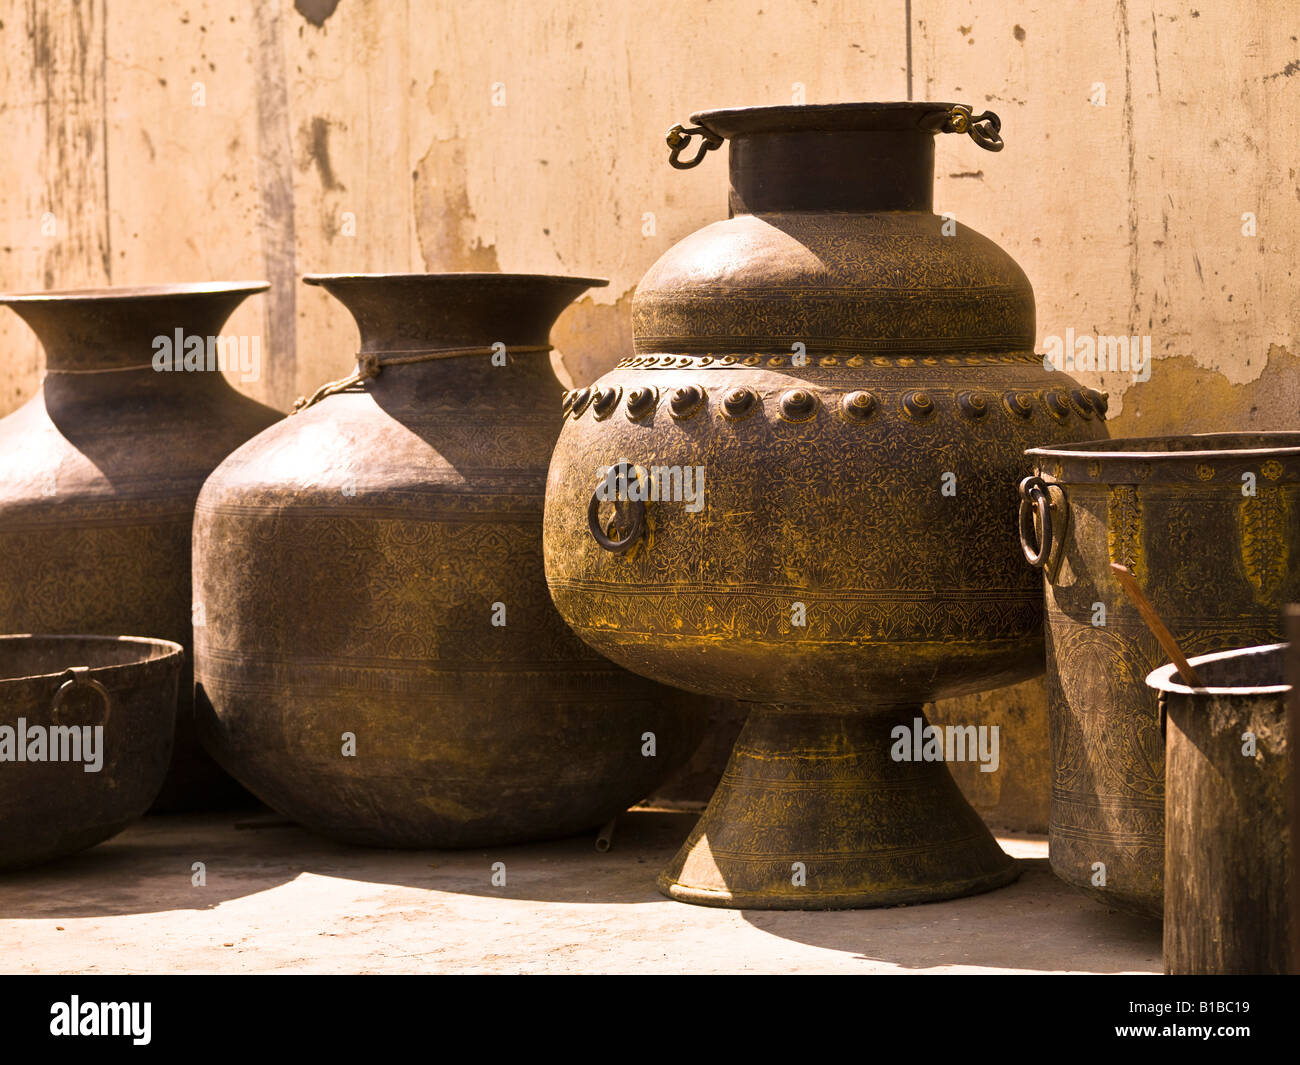 Hand crafted jugs, Jaipur, India - Stock Image